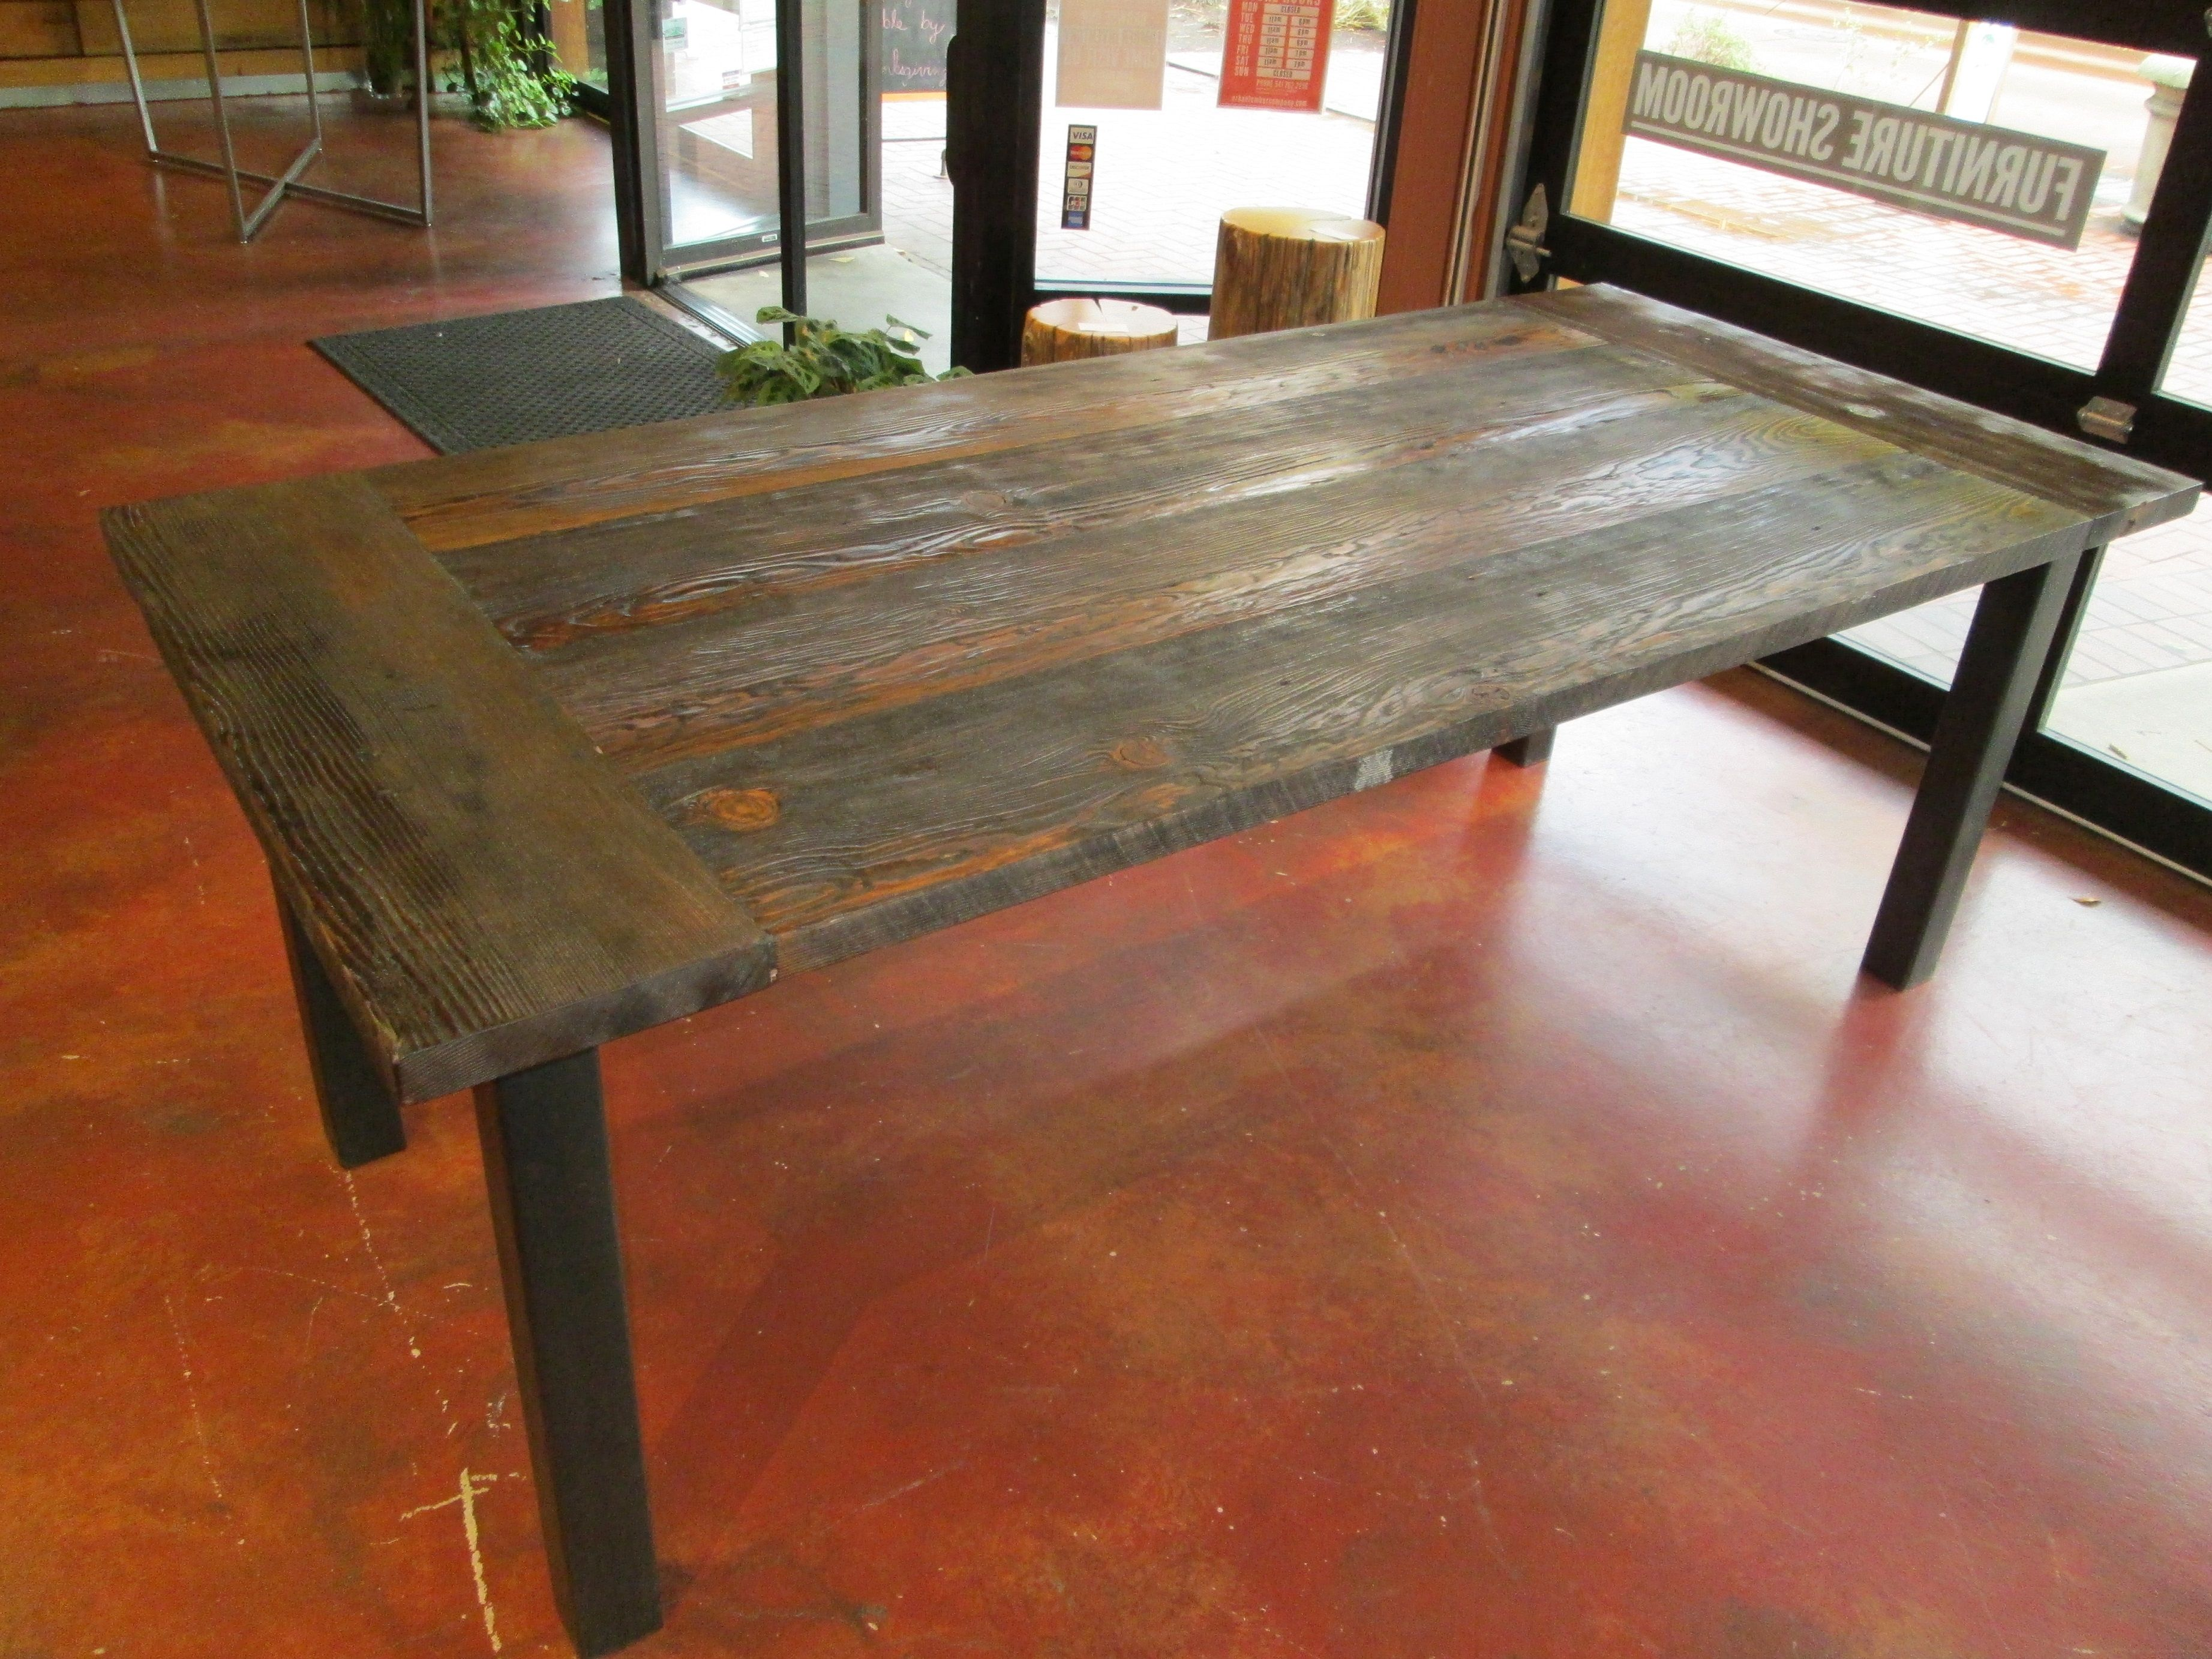 Harvest Table With Breadboard Ends And Black Steel Legs. 6u0027 Long, 3u0027